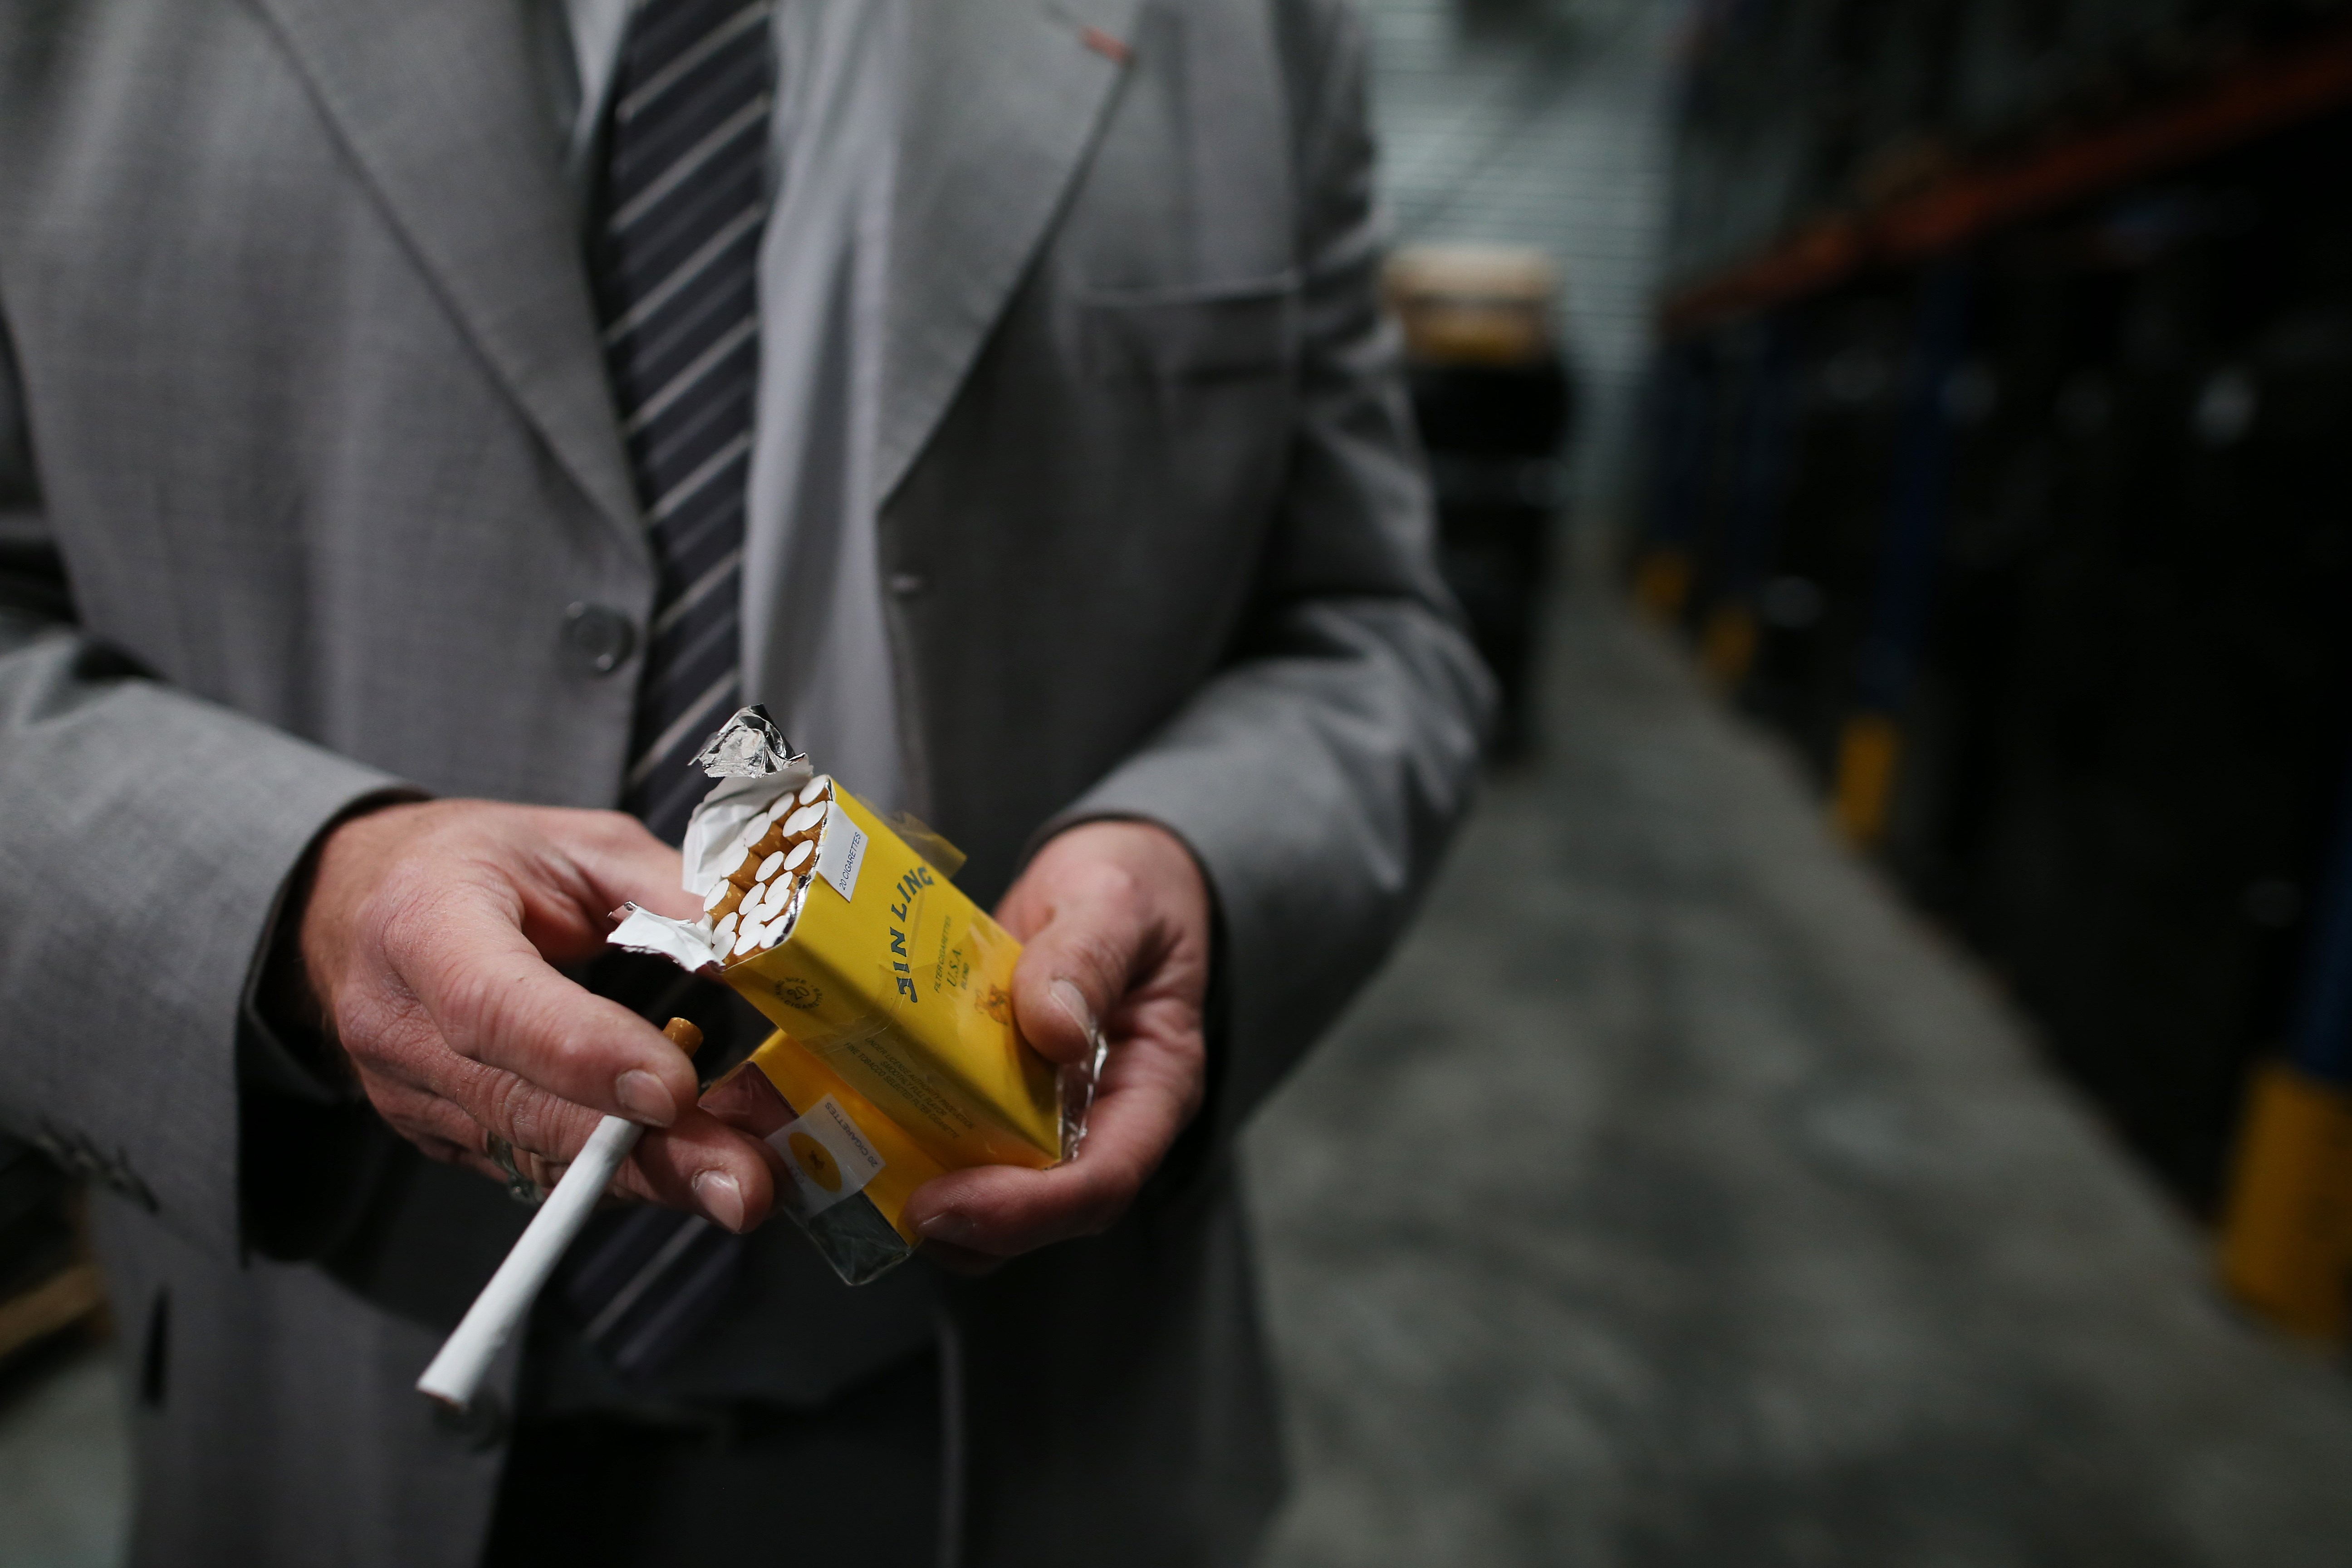 Tobacco Use Remains Heavy in East Asia